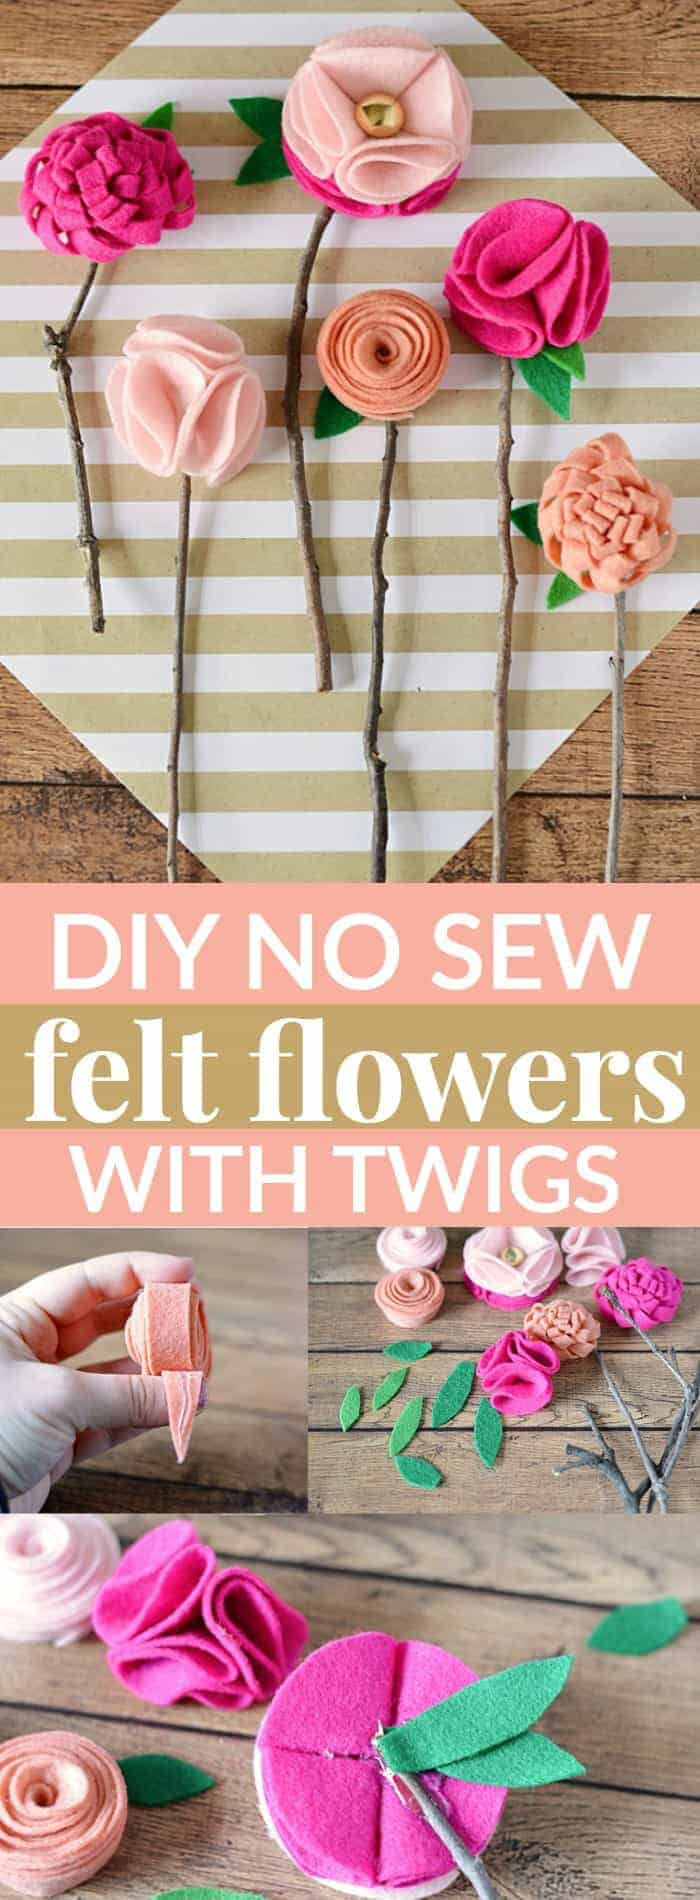 DIY No Sew Felt Flowers With Twigs by Mommy Moment